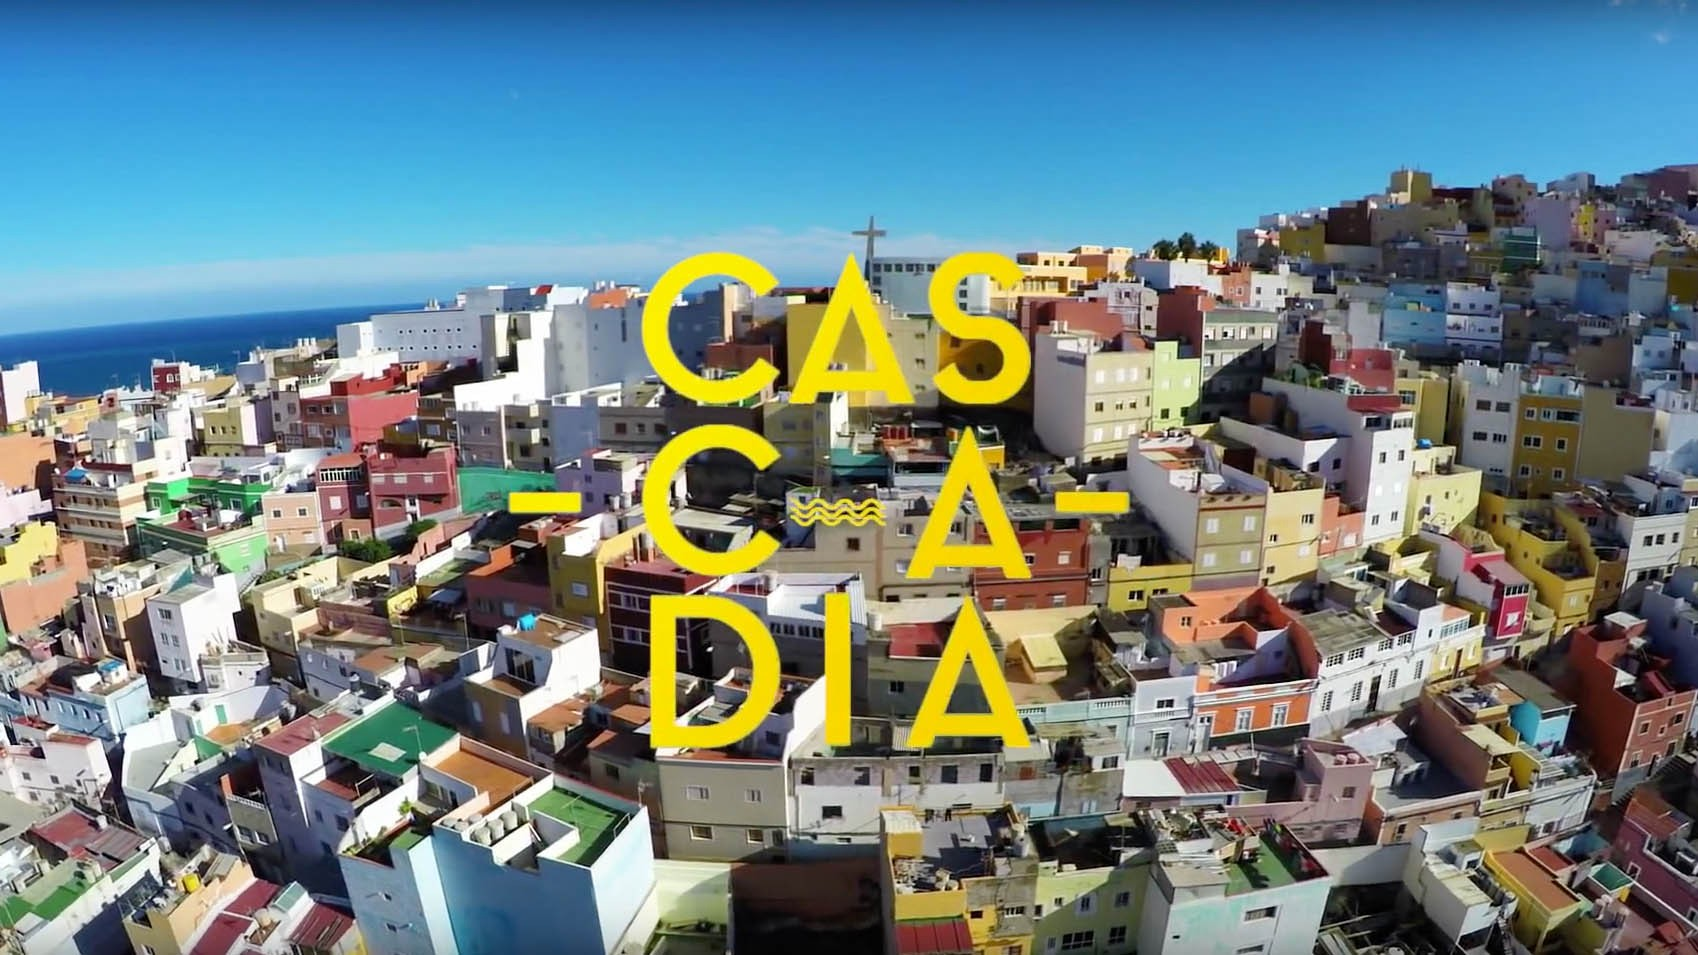 In Cascadia, Danny MacAskill takes his skills to sunny Gran Canaria